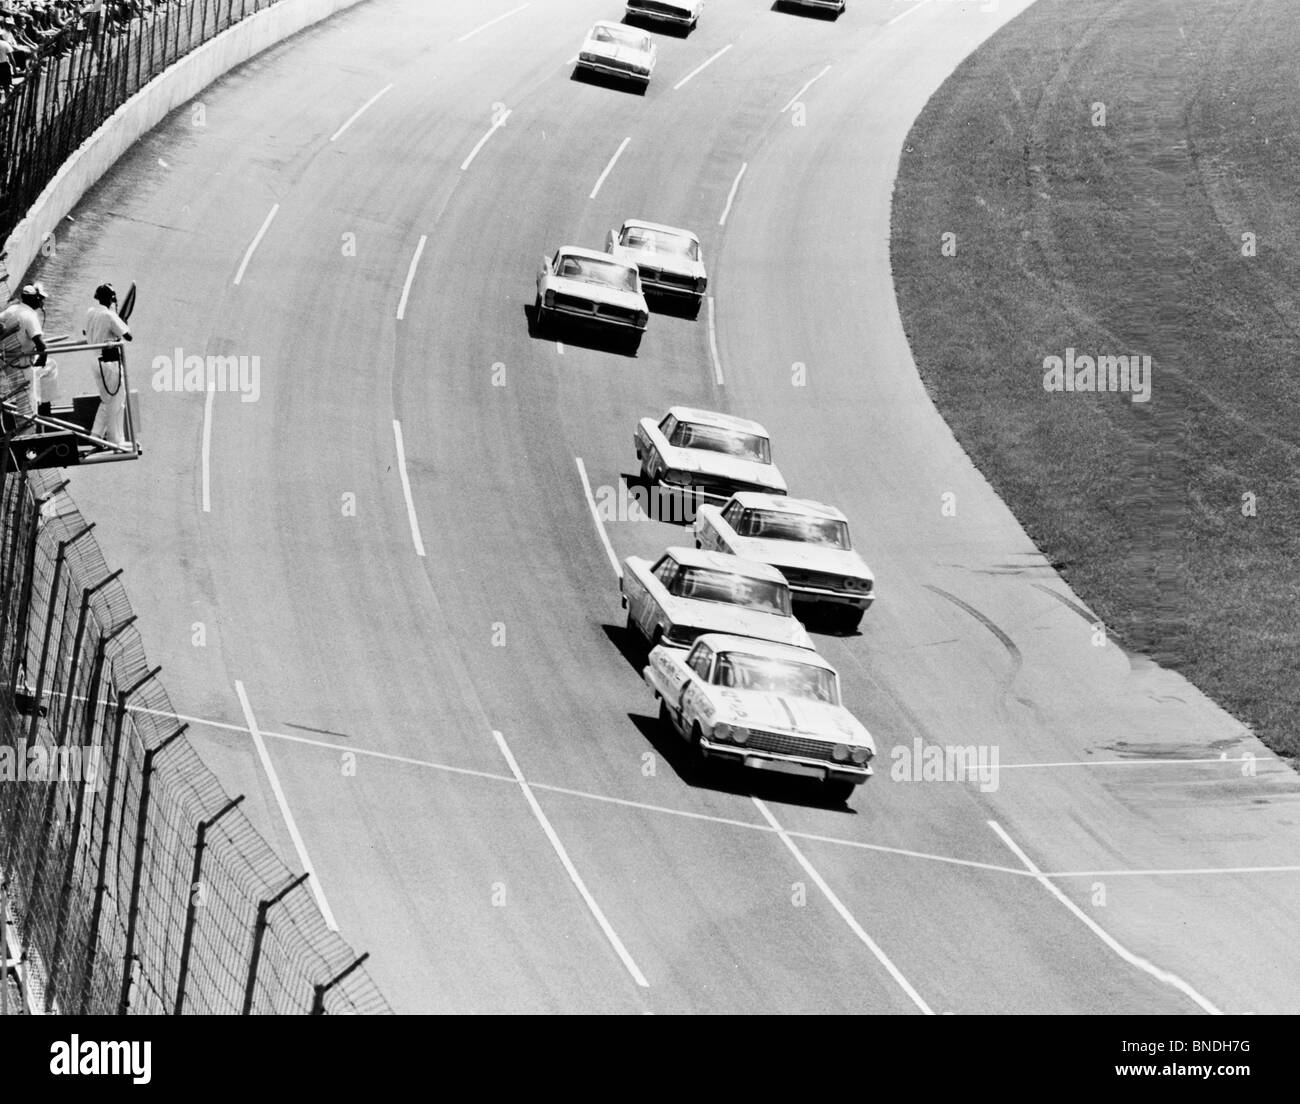 High angle view of stock cars on a racing track, Daytona Firecracker 400, Daytona Beach, Florida, USA - Stock Image